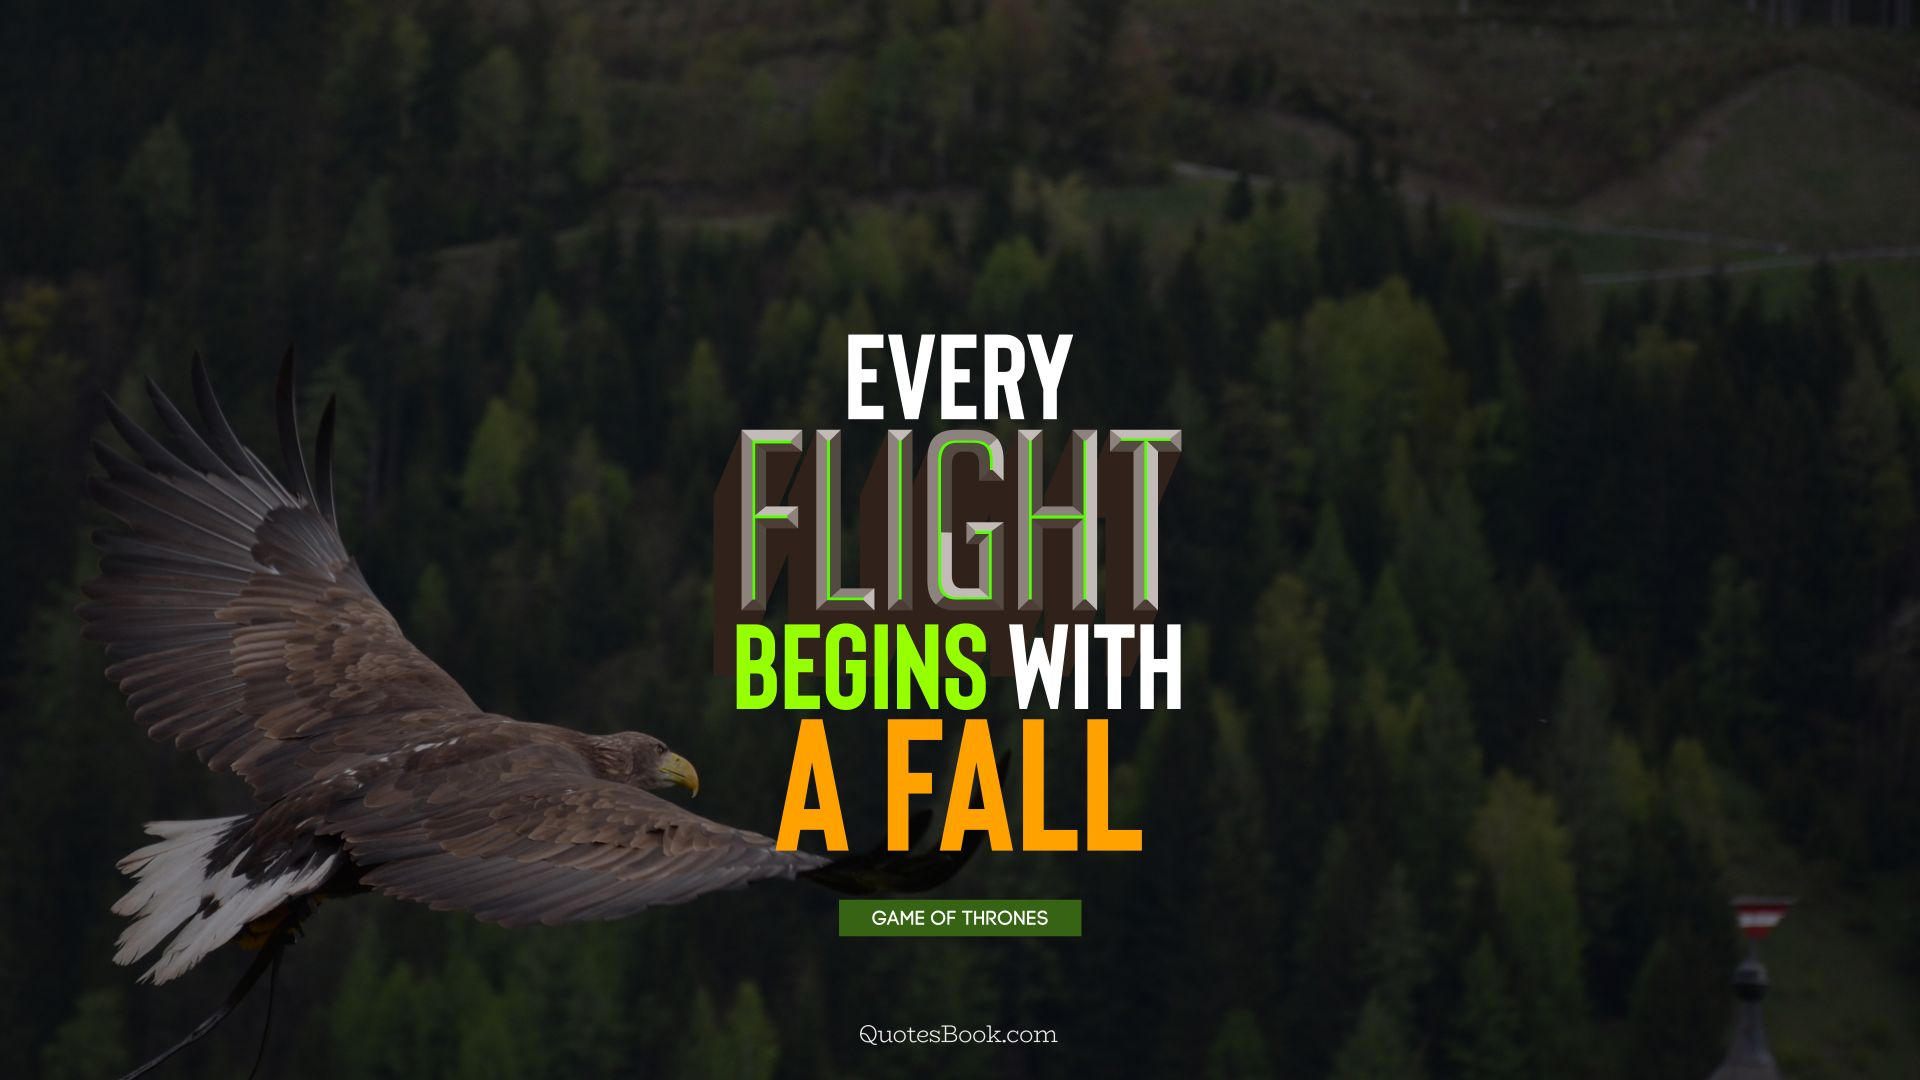 Every flight begins with a fall. - Quote by George R.R. Martin